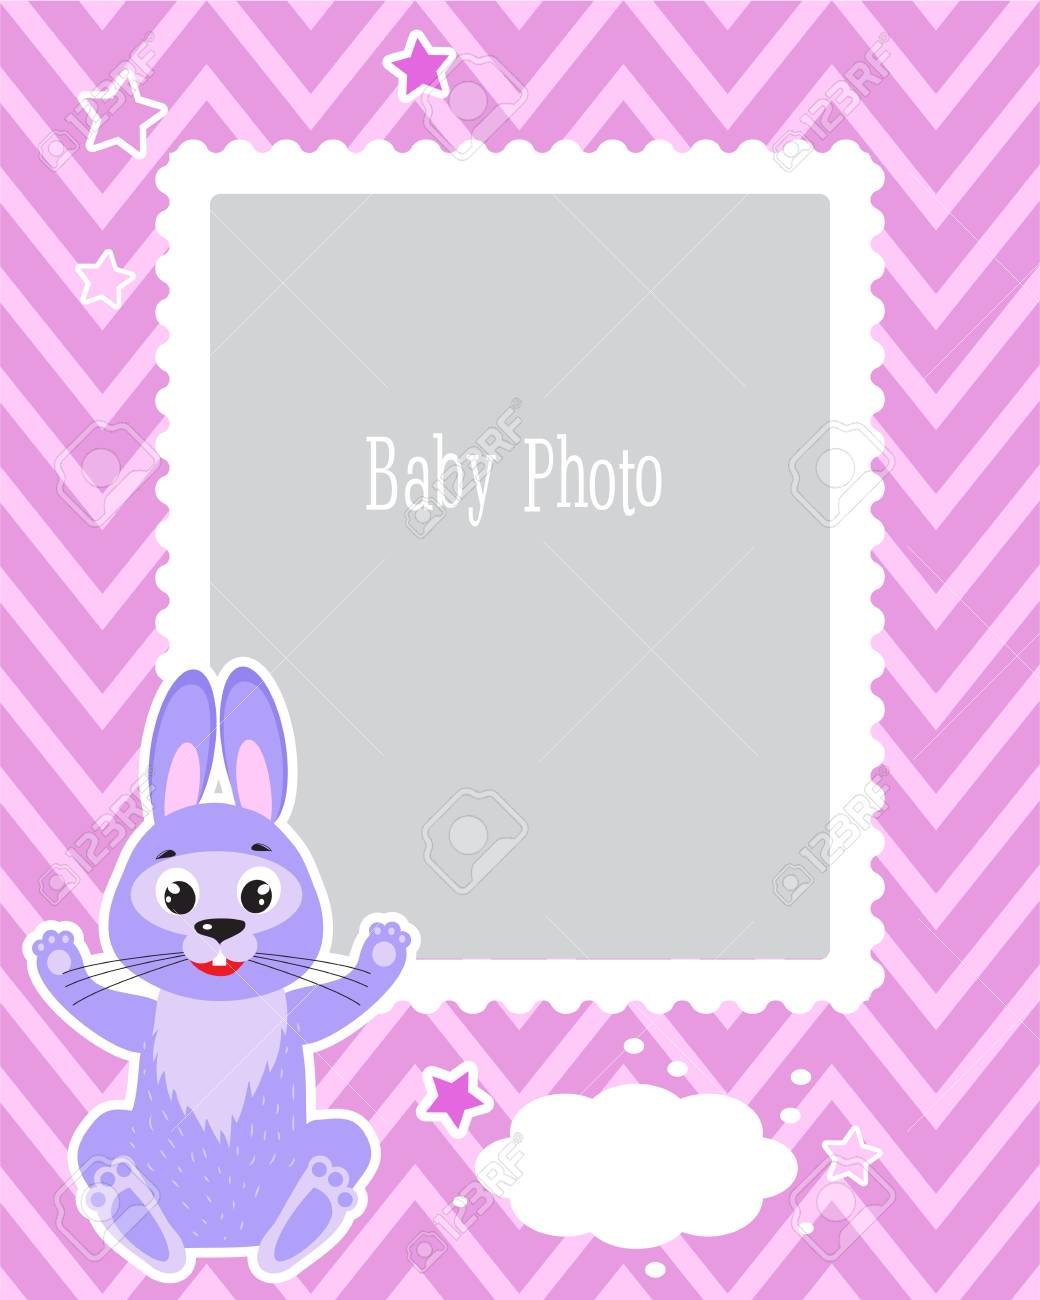 Photo Frame Design For Kids With Cute Rabbit. Decorative Template ...